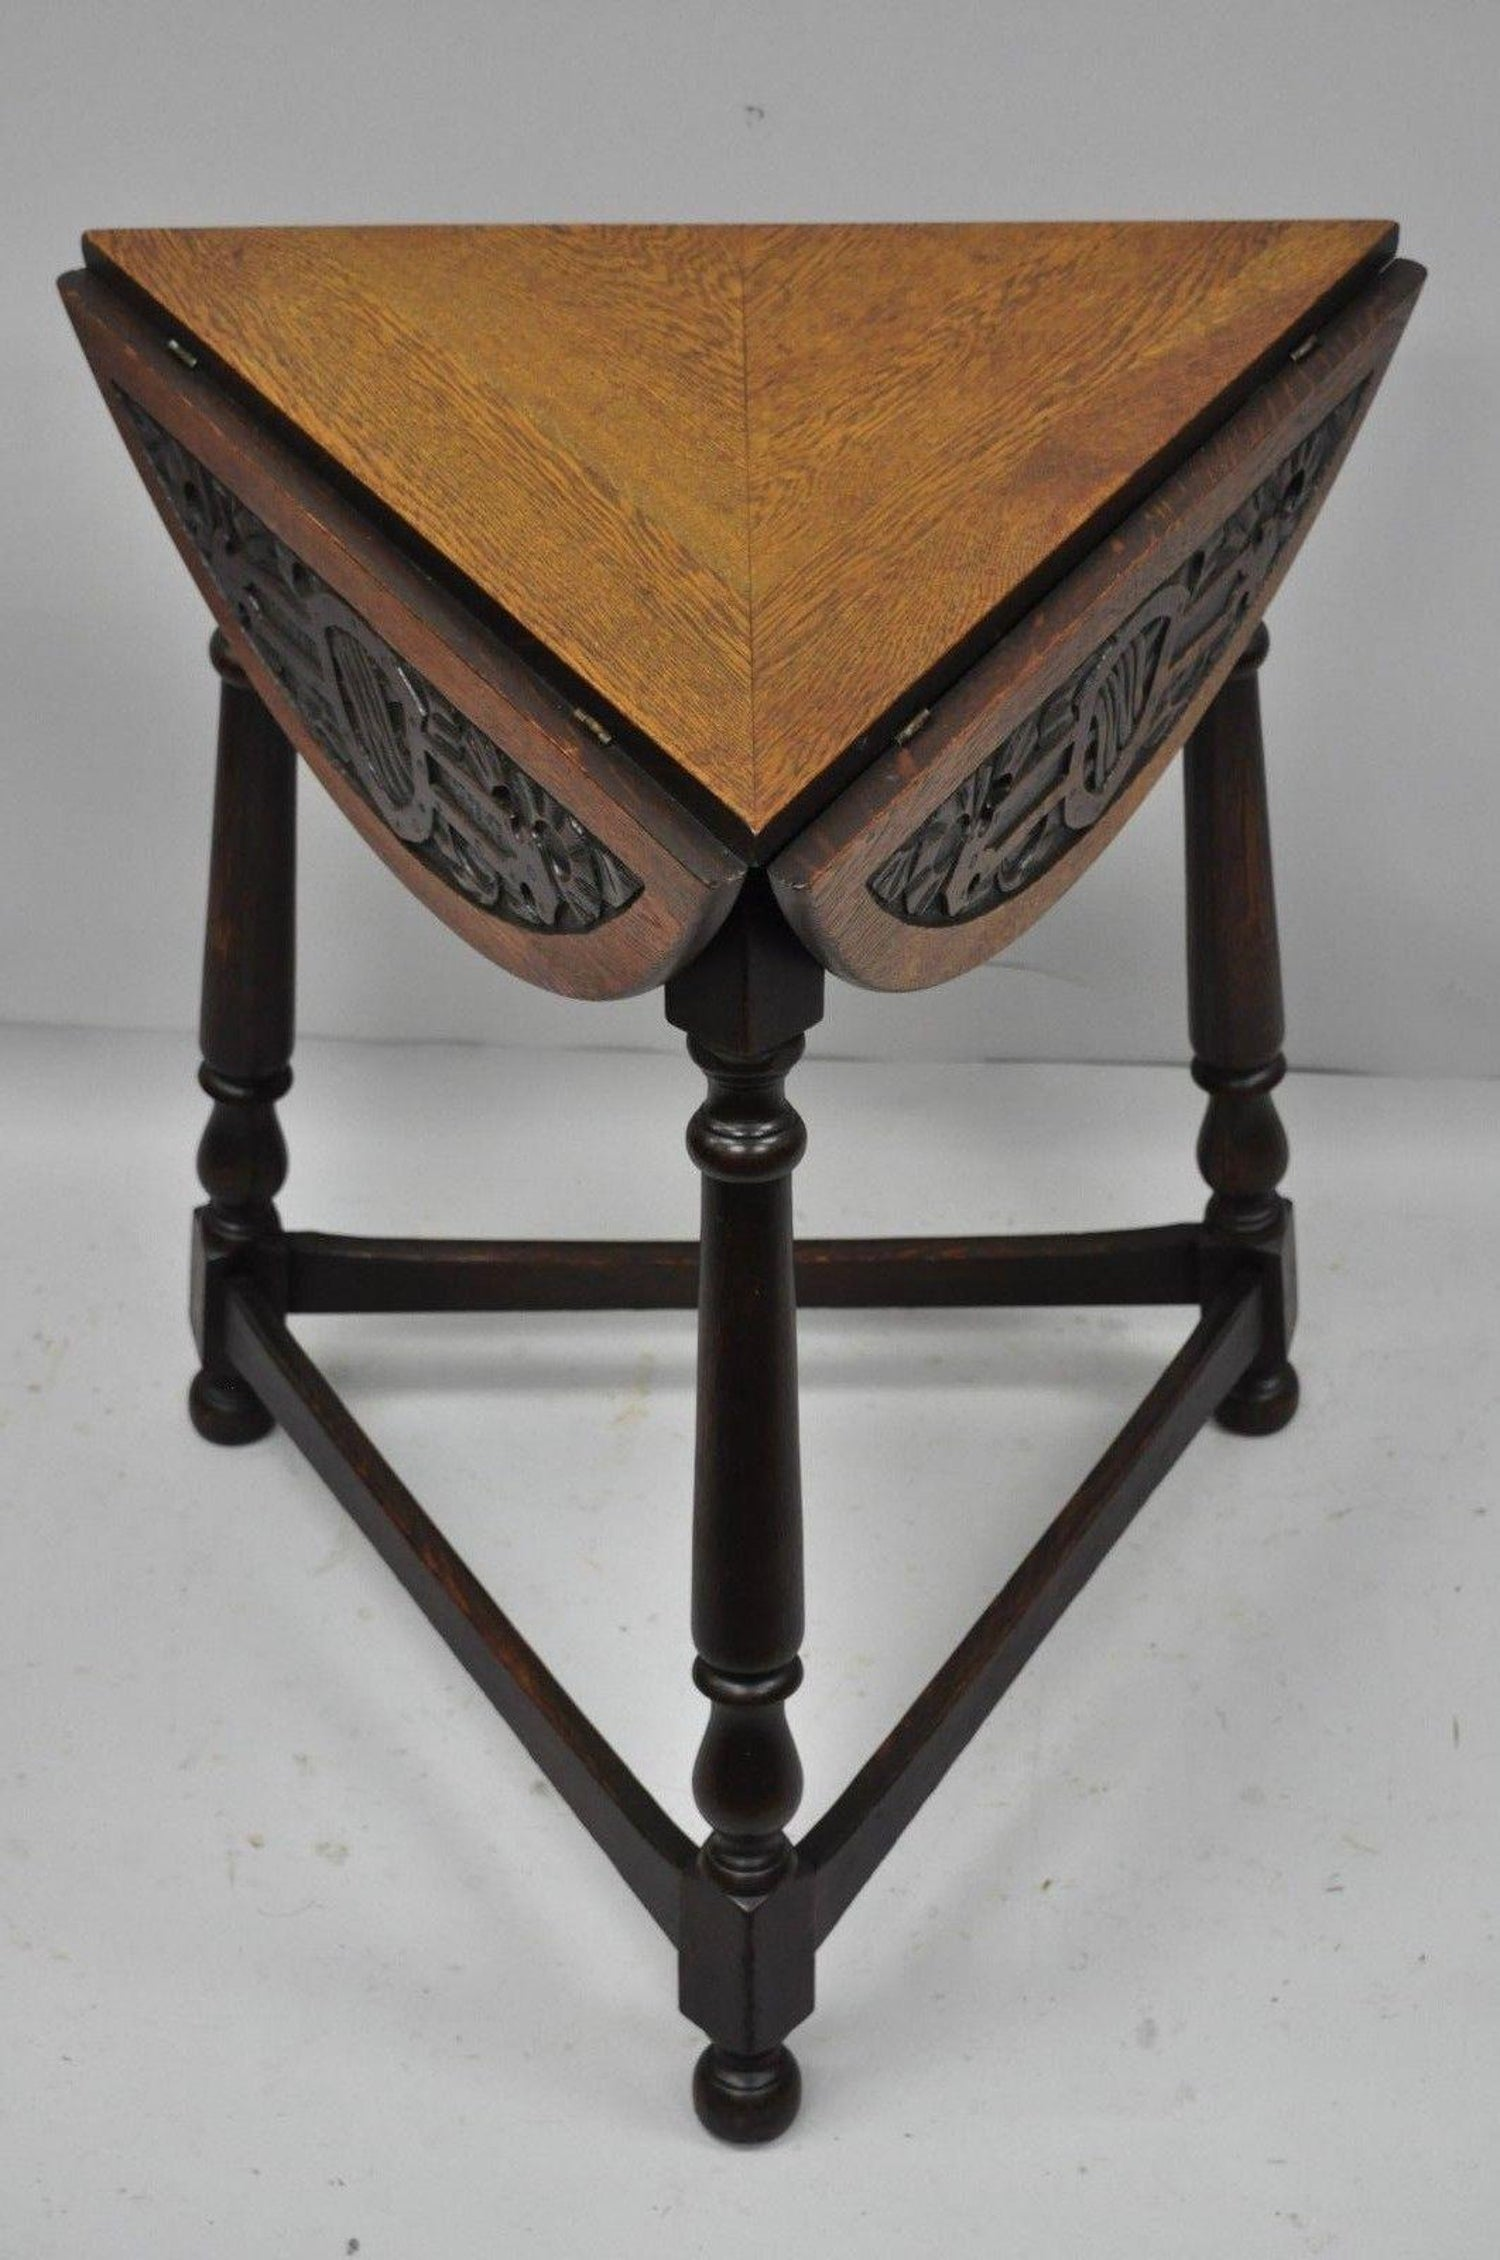 Groovy Antique Carved Oak Wood Renaissance Revival Triangle Drop Squirreltailoven Fun Painted Chair Ideas Images Squirreltailovenorg